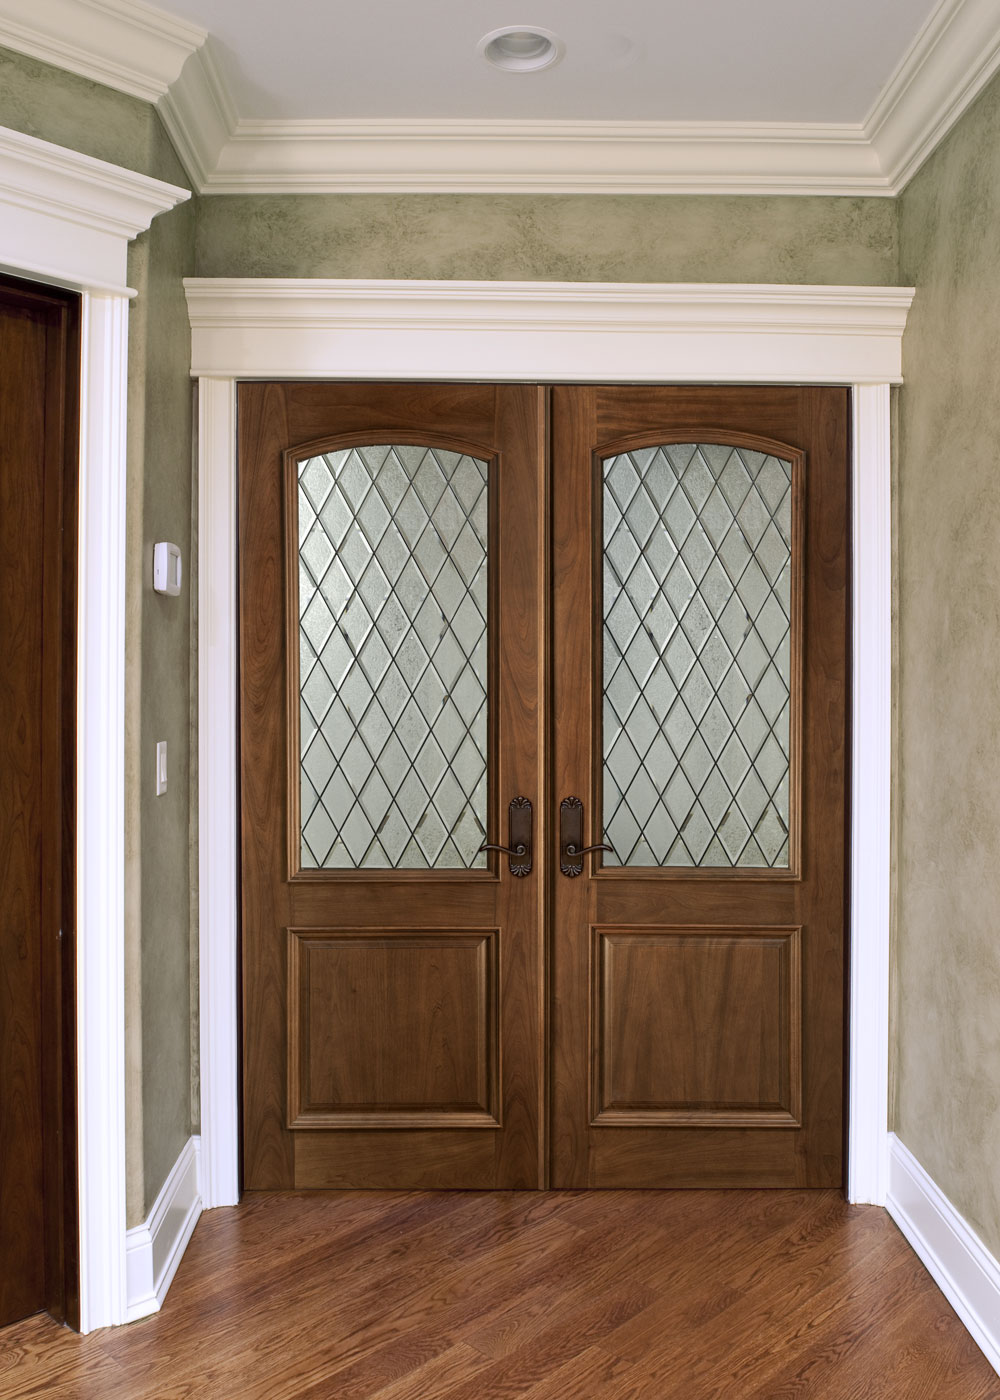 10 benefits of double door designs interior exterior ideas for Home double door